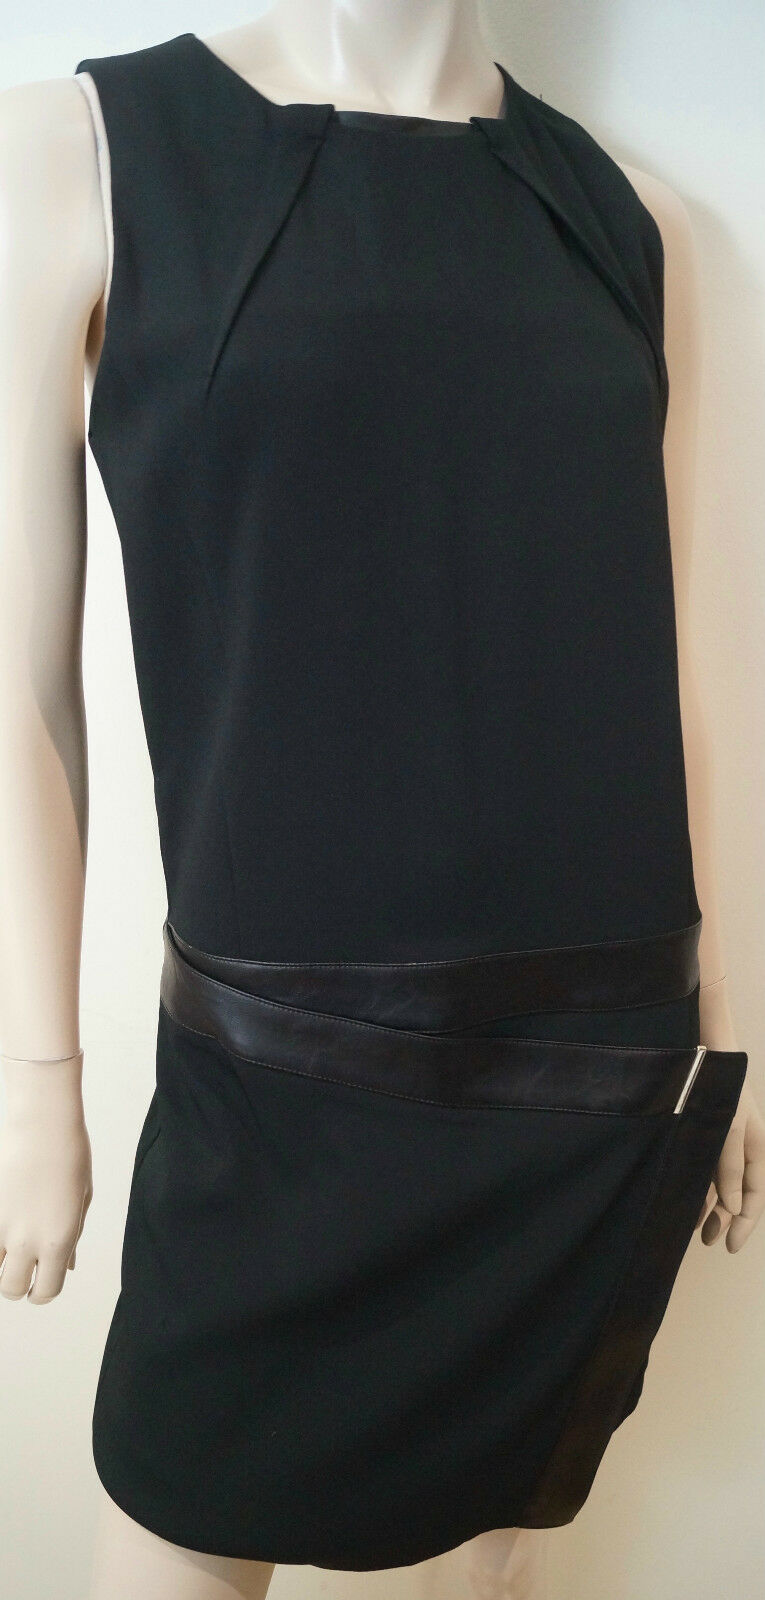 ATOS LOMBARDINI Black Drop Waist Sleeveless Wiggle Pencil Dress Sz:42 UK10 BNWT